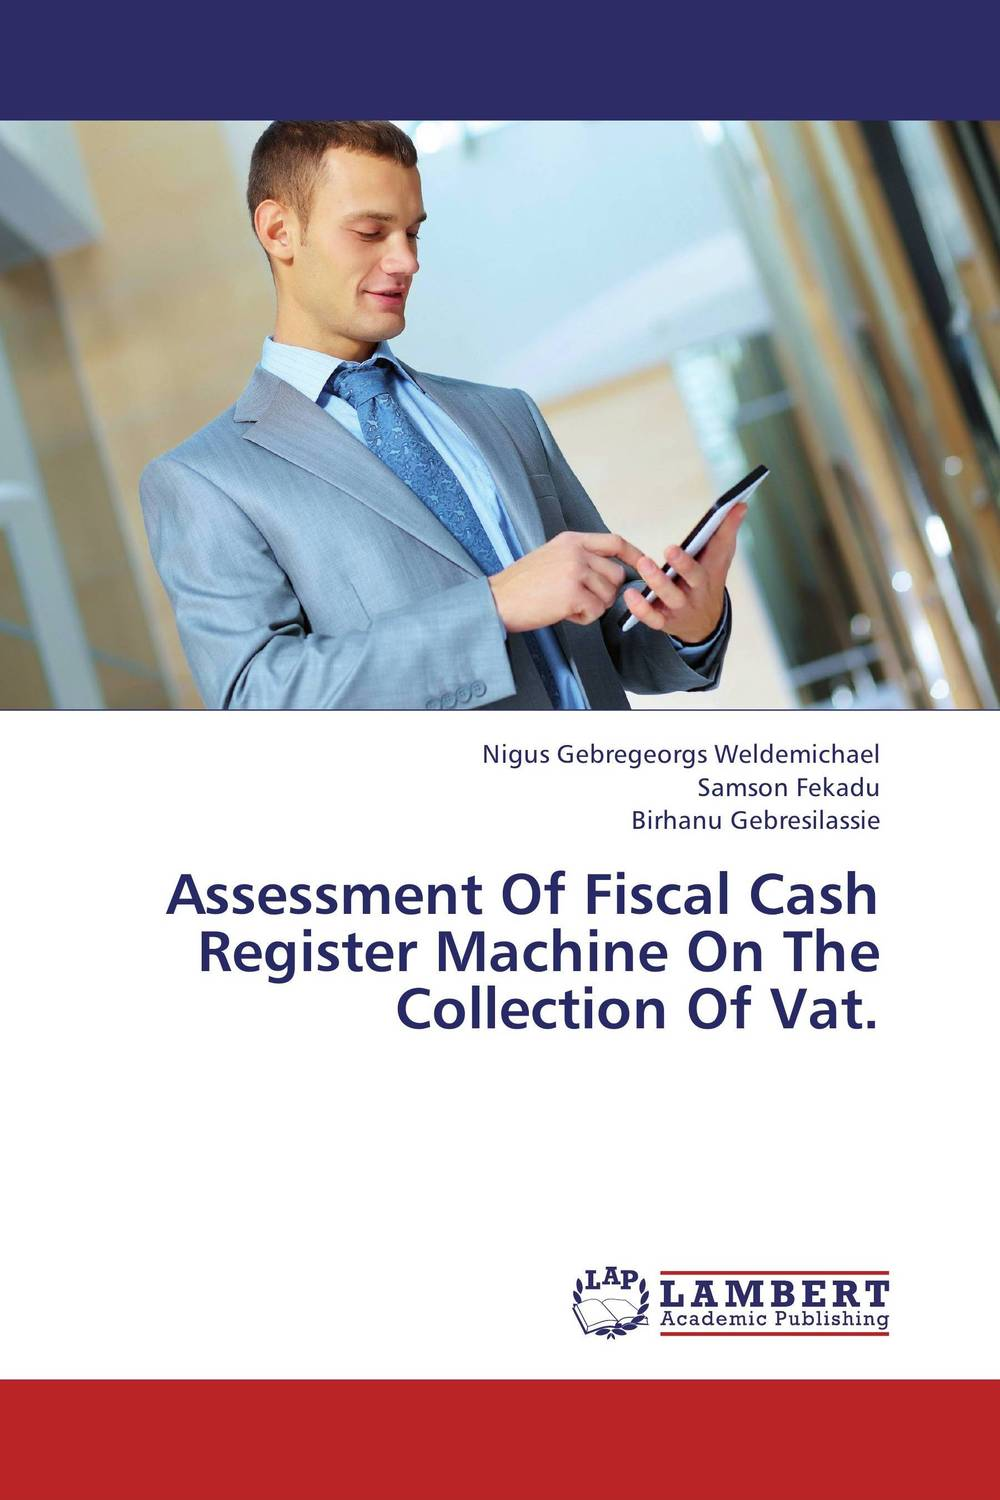 Assessment Of Fiscal Cash Register Machine On The Collection Of Vat.